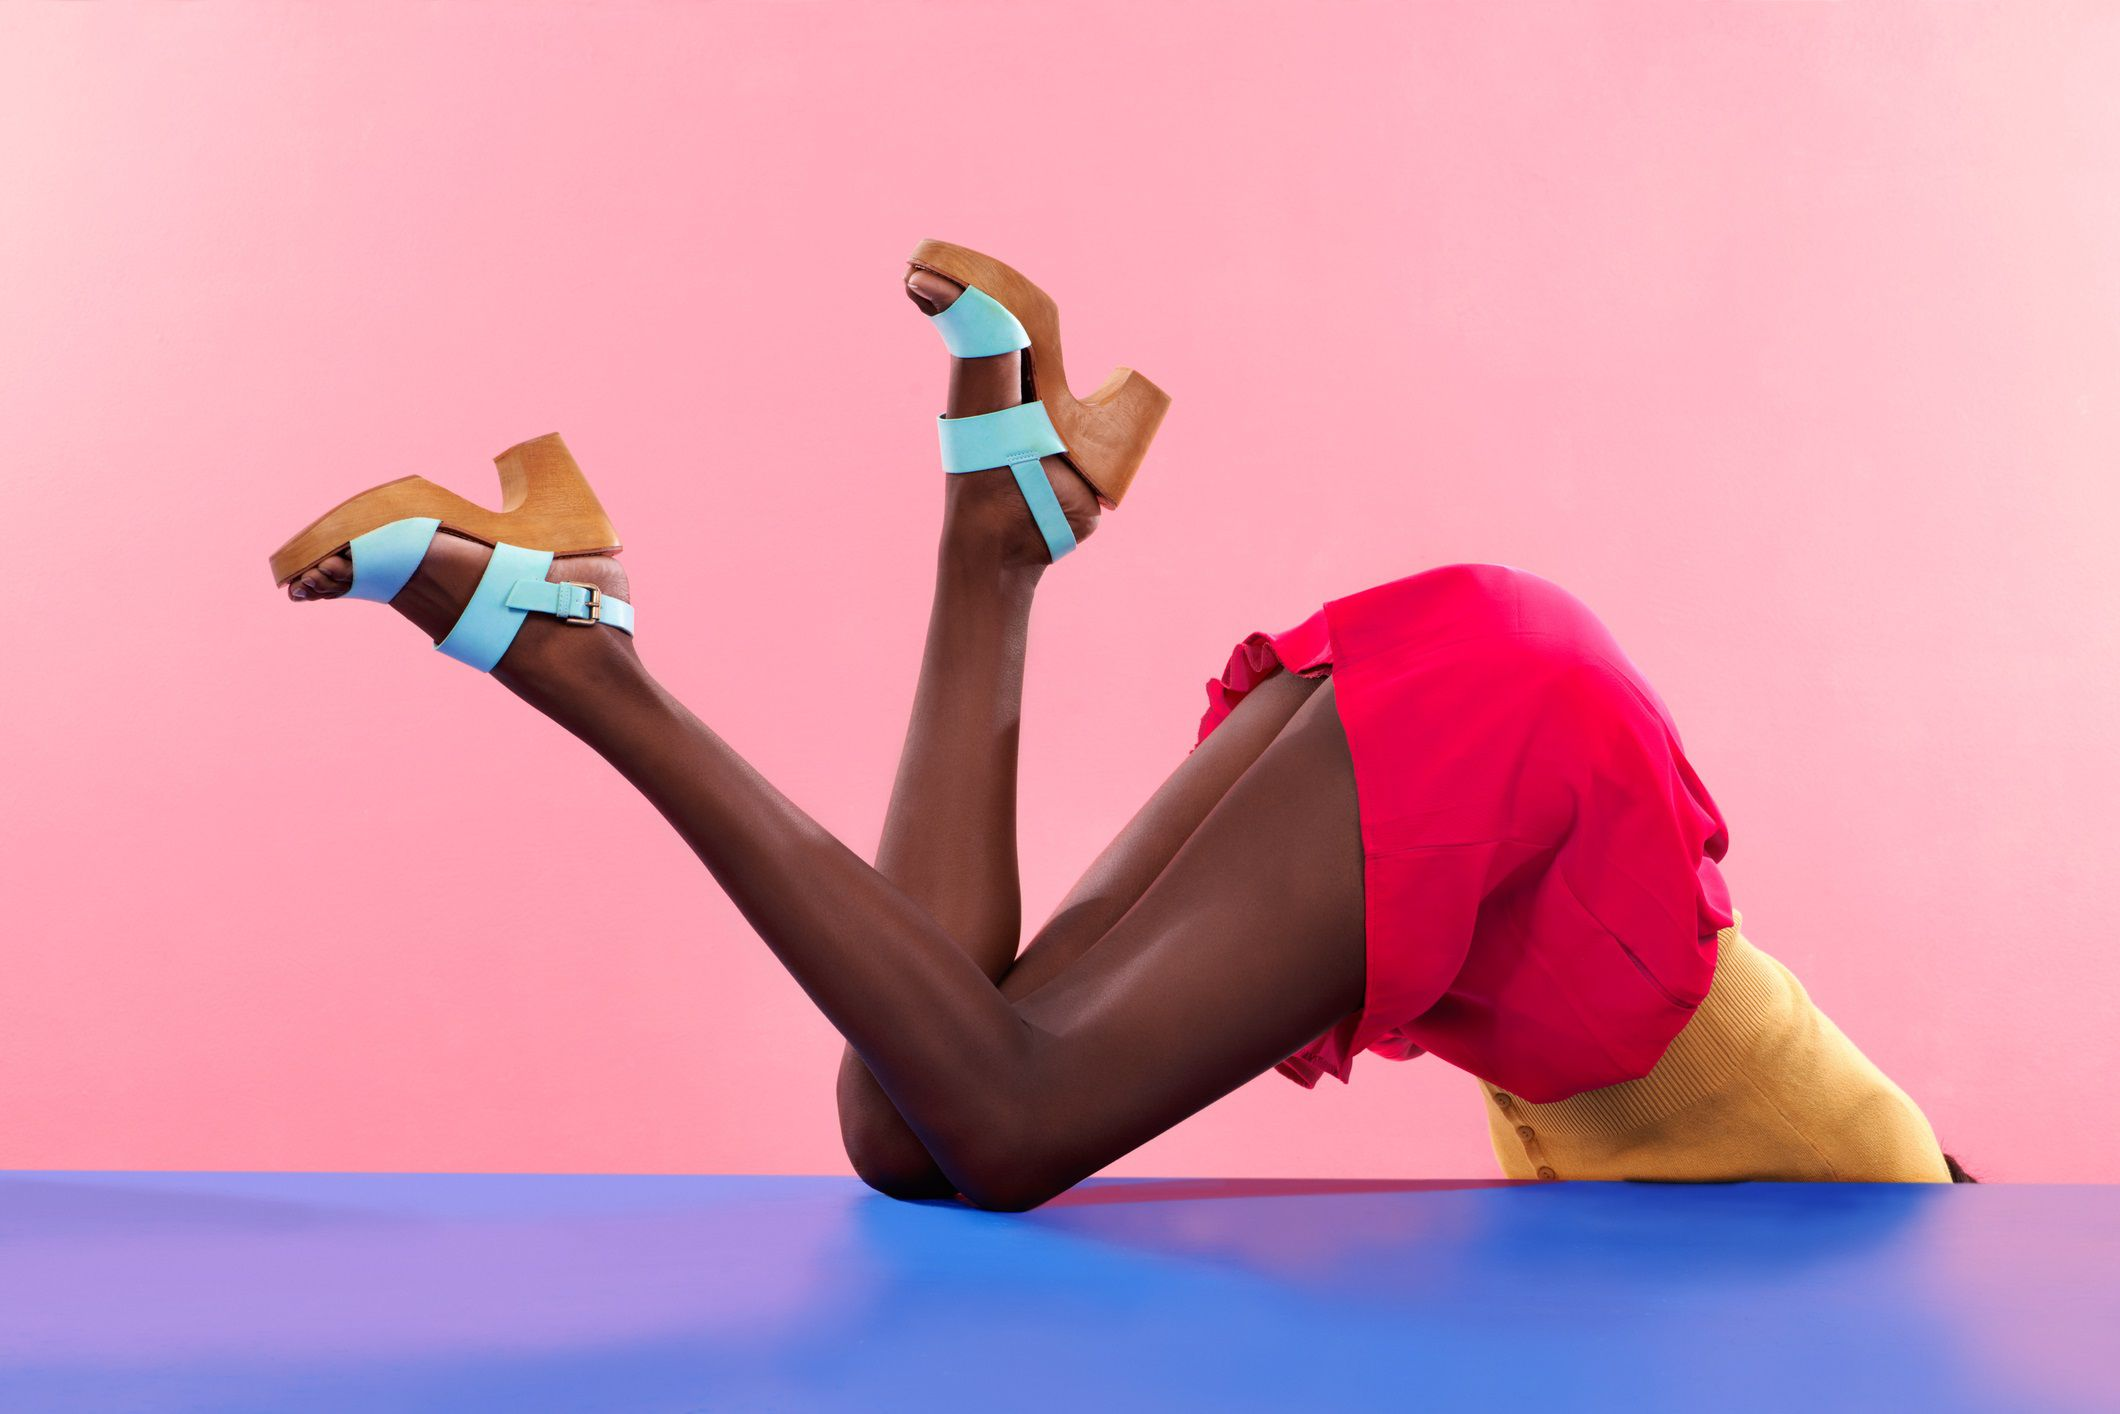 headless girl with heels, upside down, hanging off edge of table